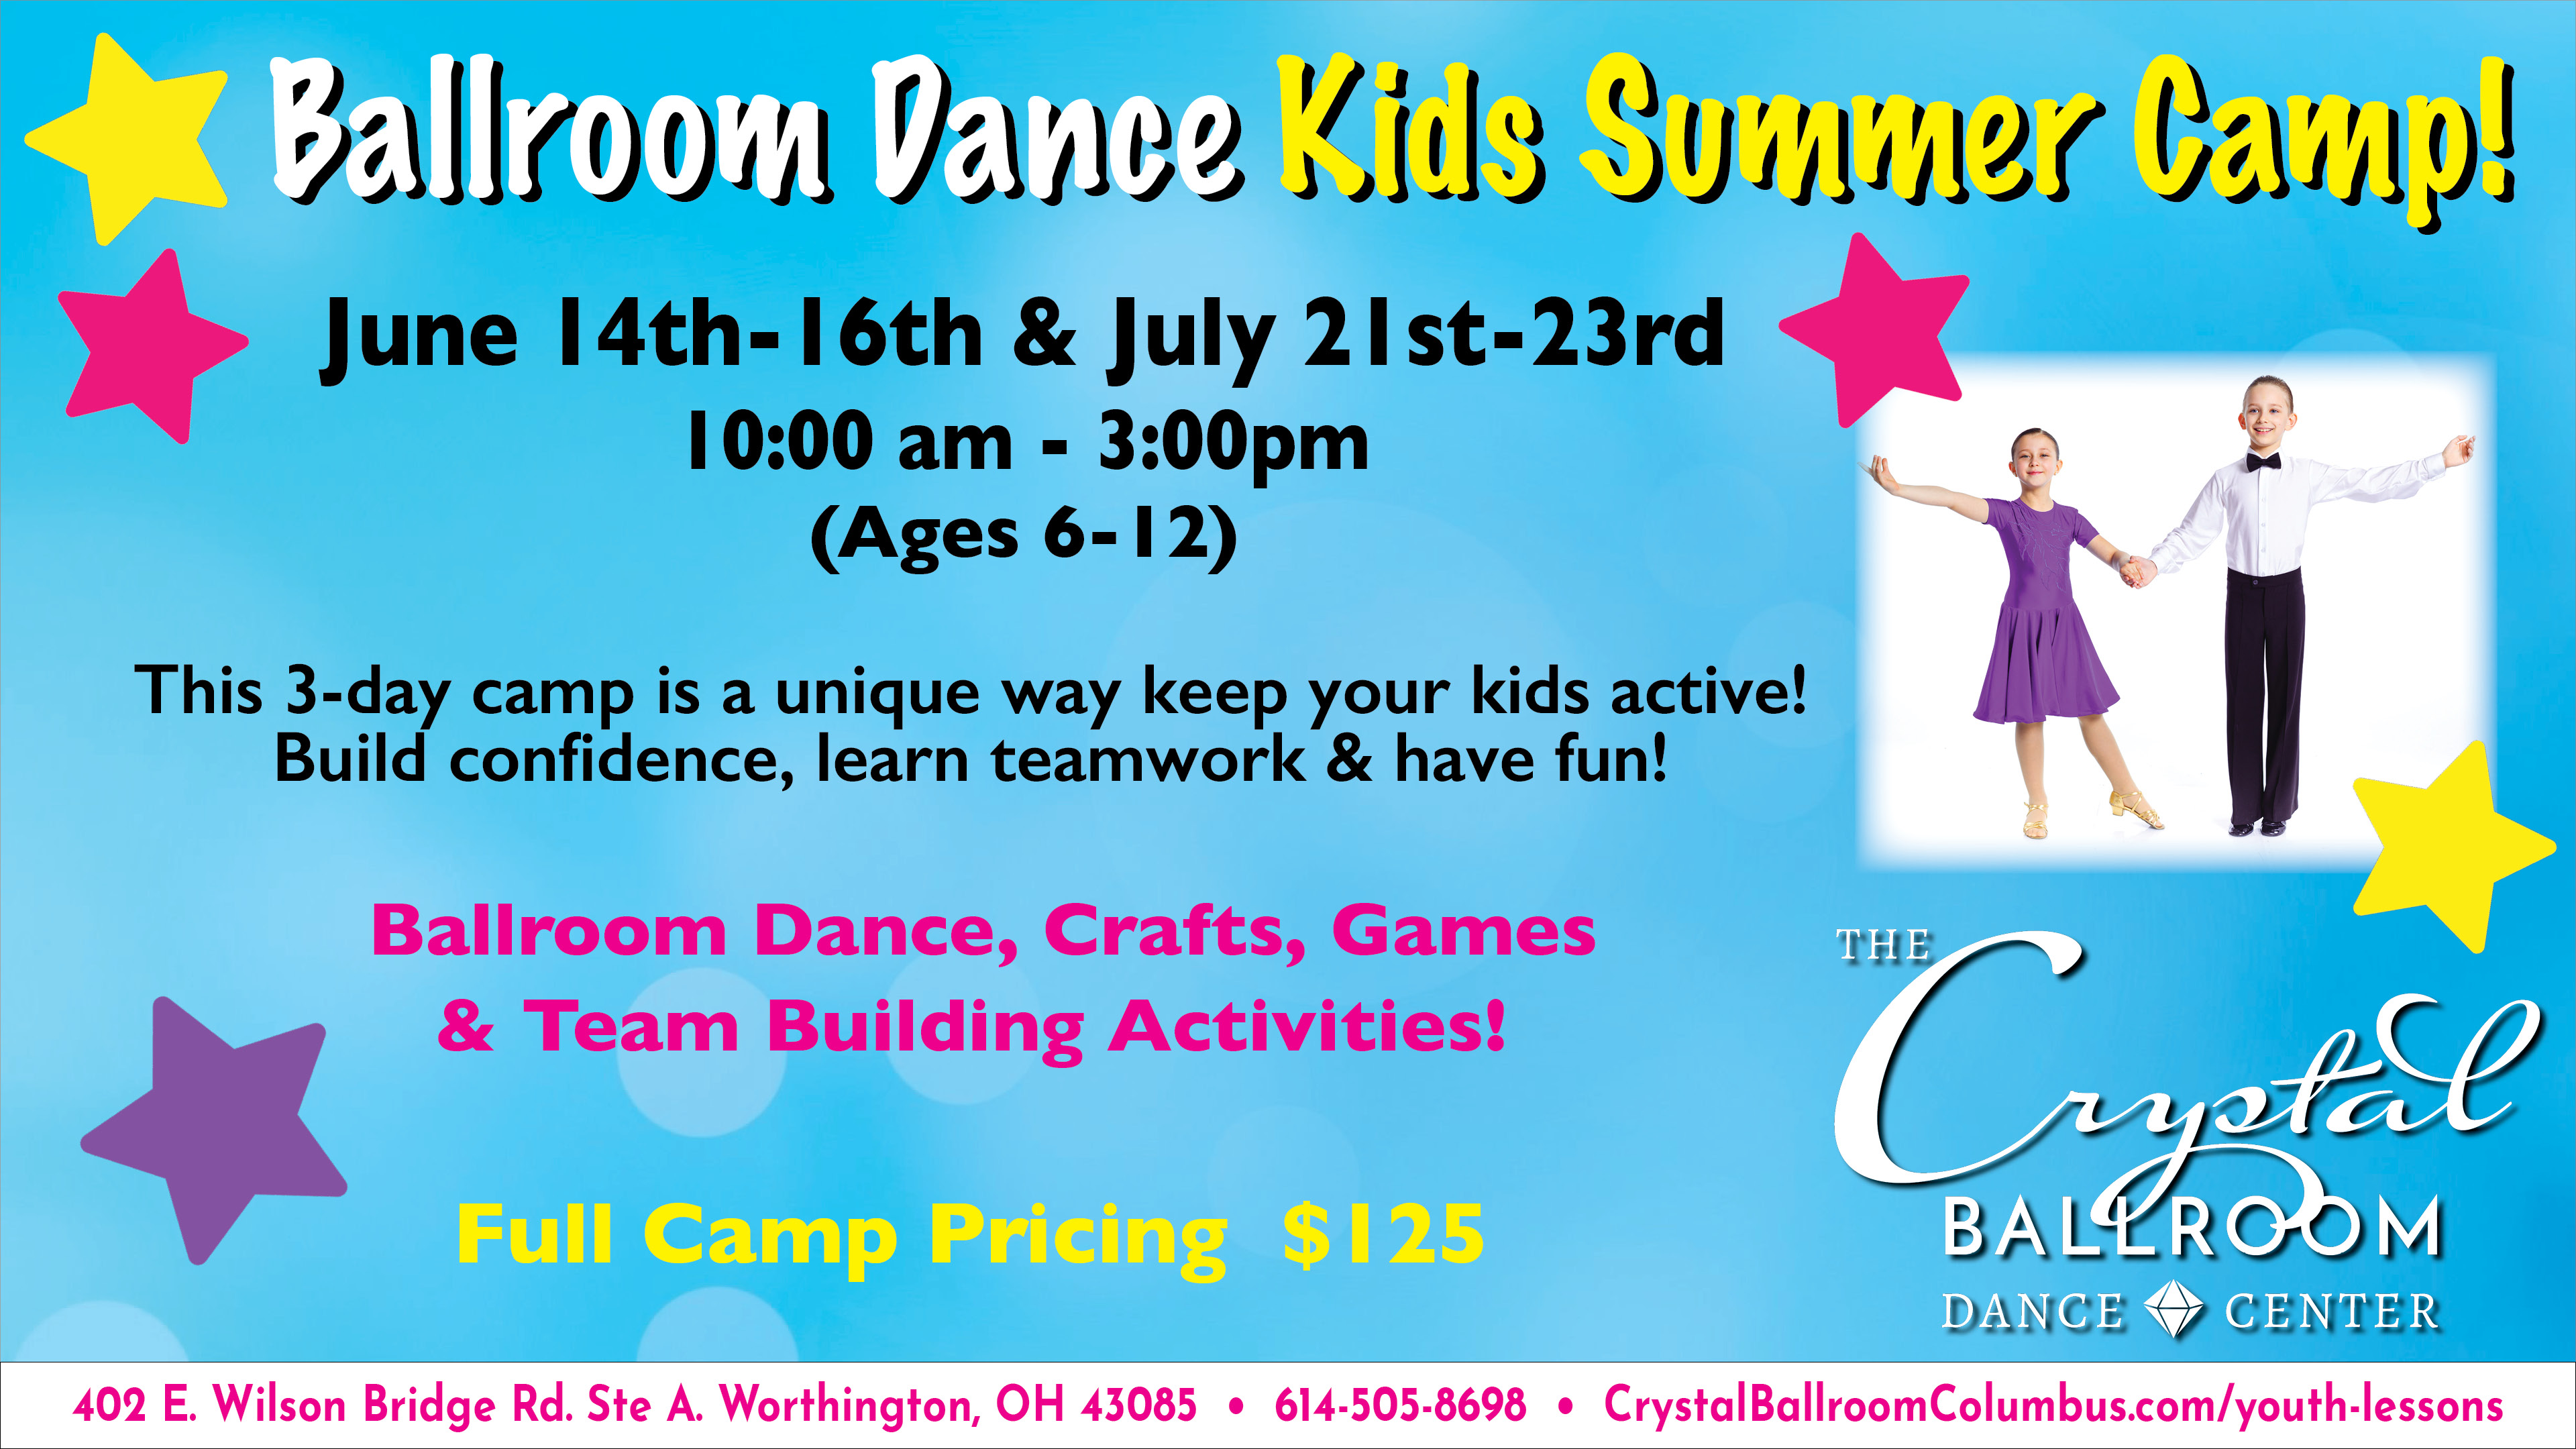 Ballroom Dance Kids Summer Camp (July 21st - July 23rd)